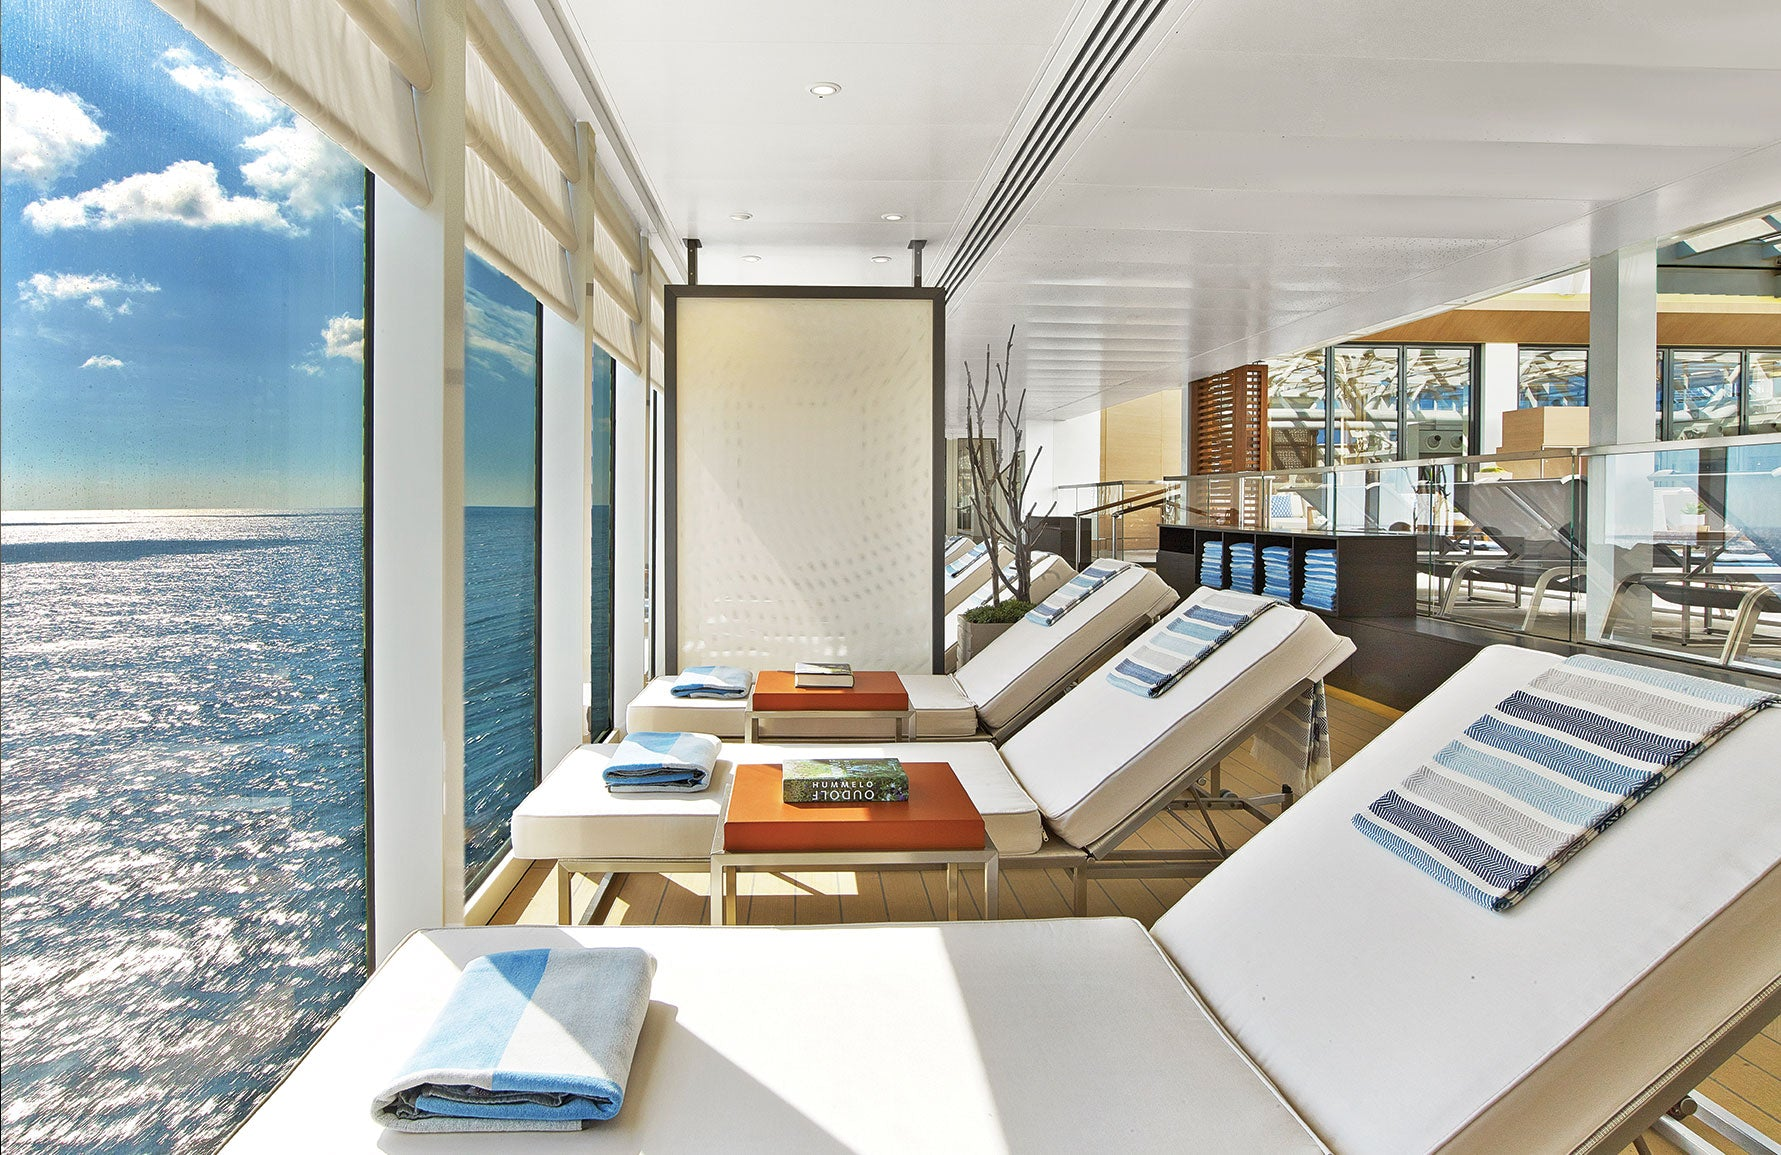 Most Luxurious Cruise Ships in the World _ Viking Sun _ LuxDeco Style Guide